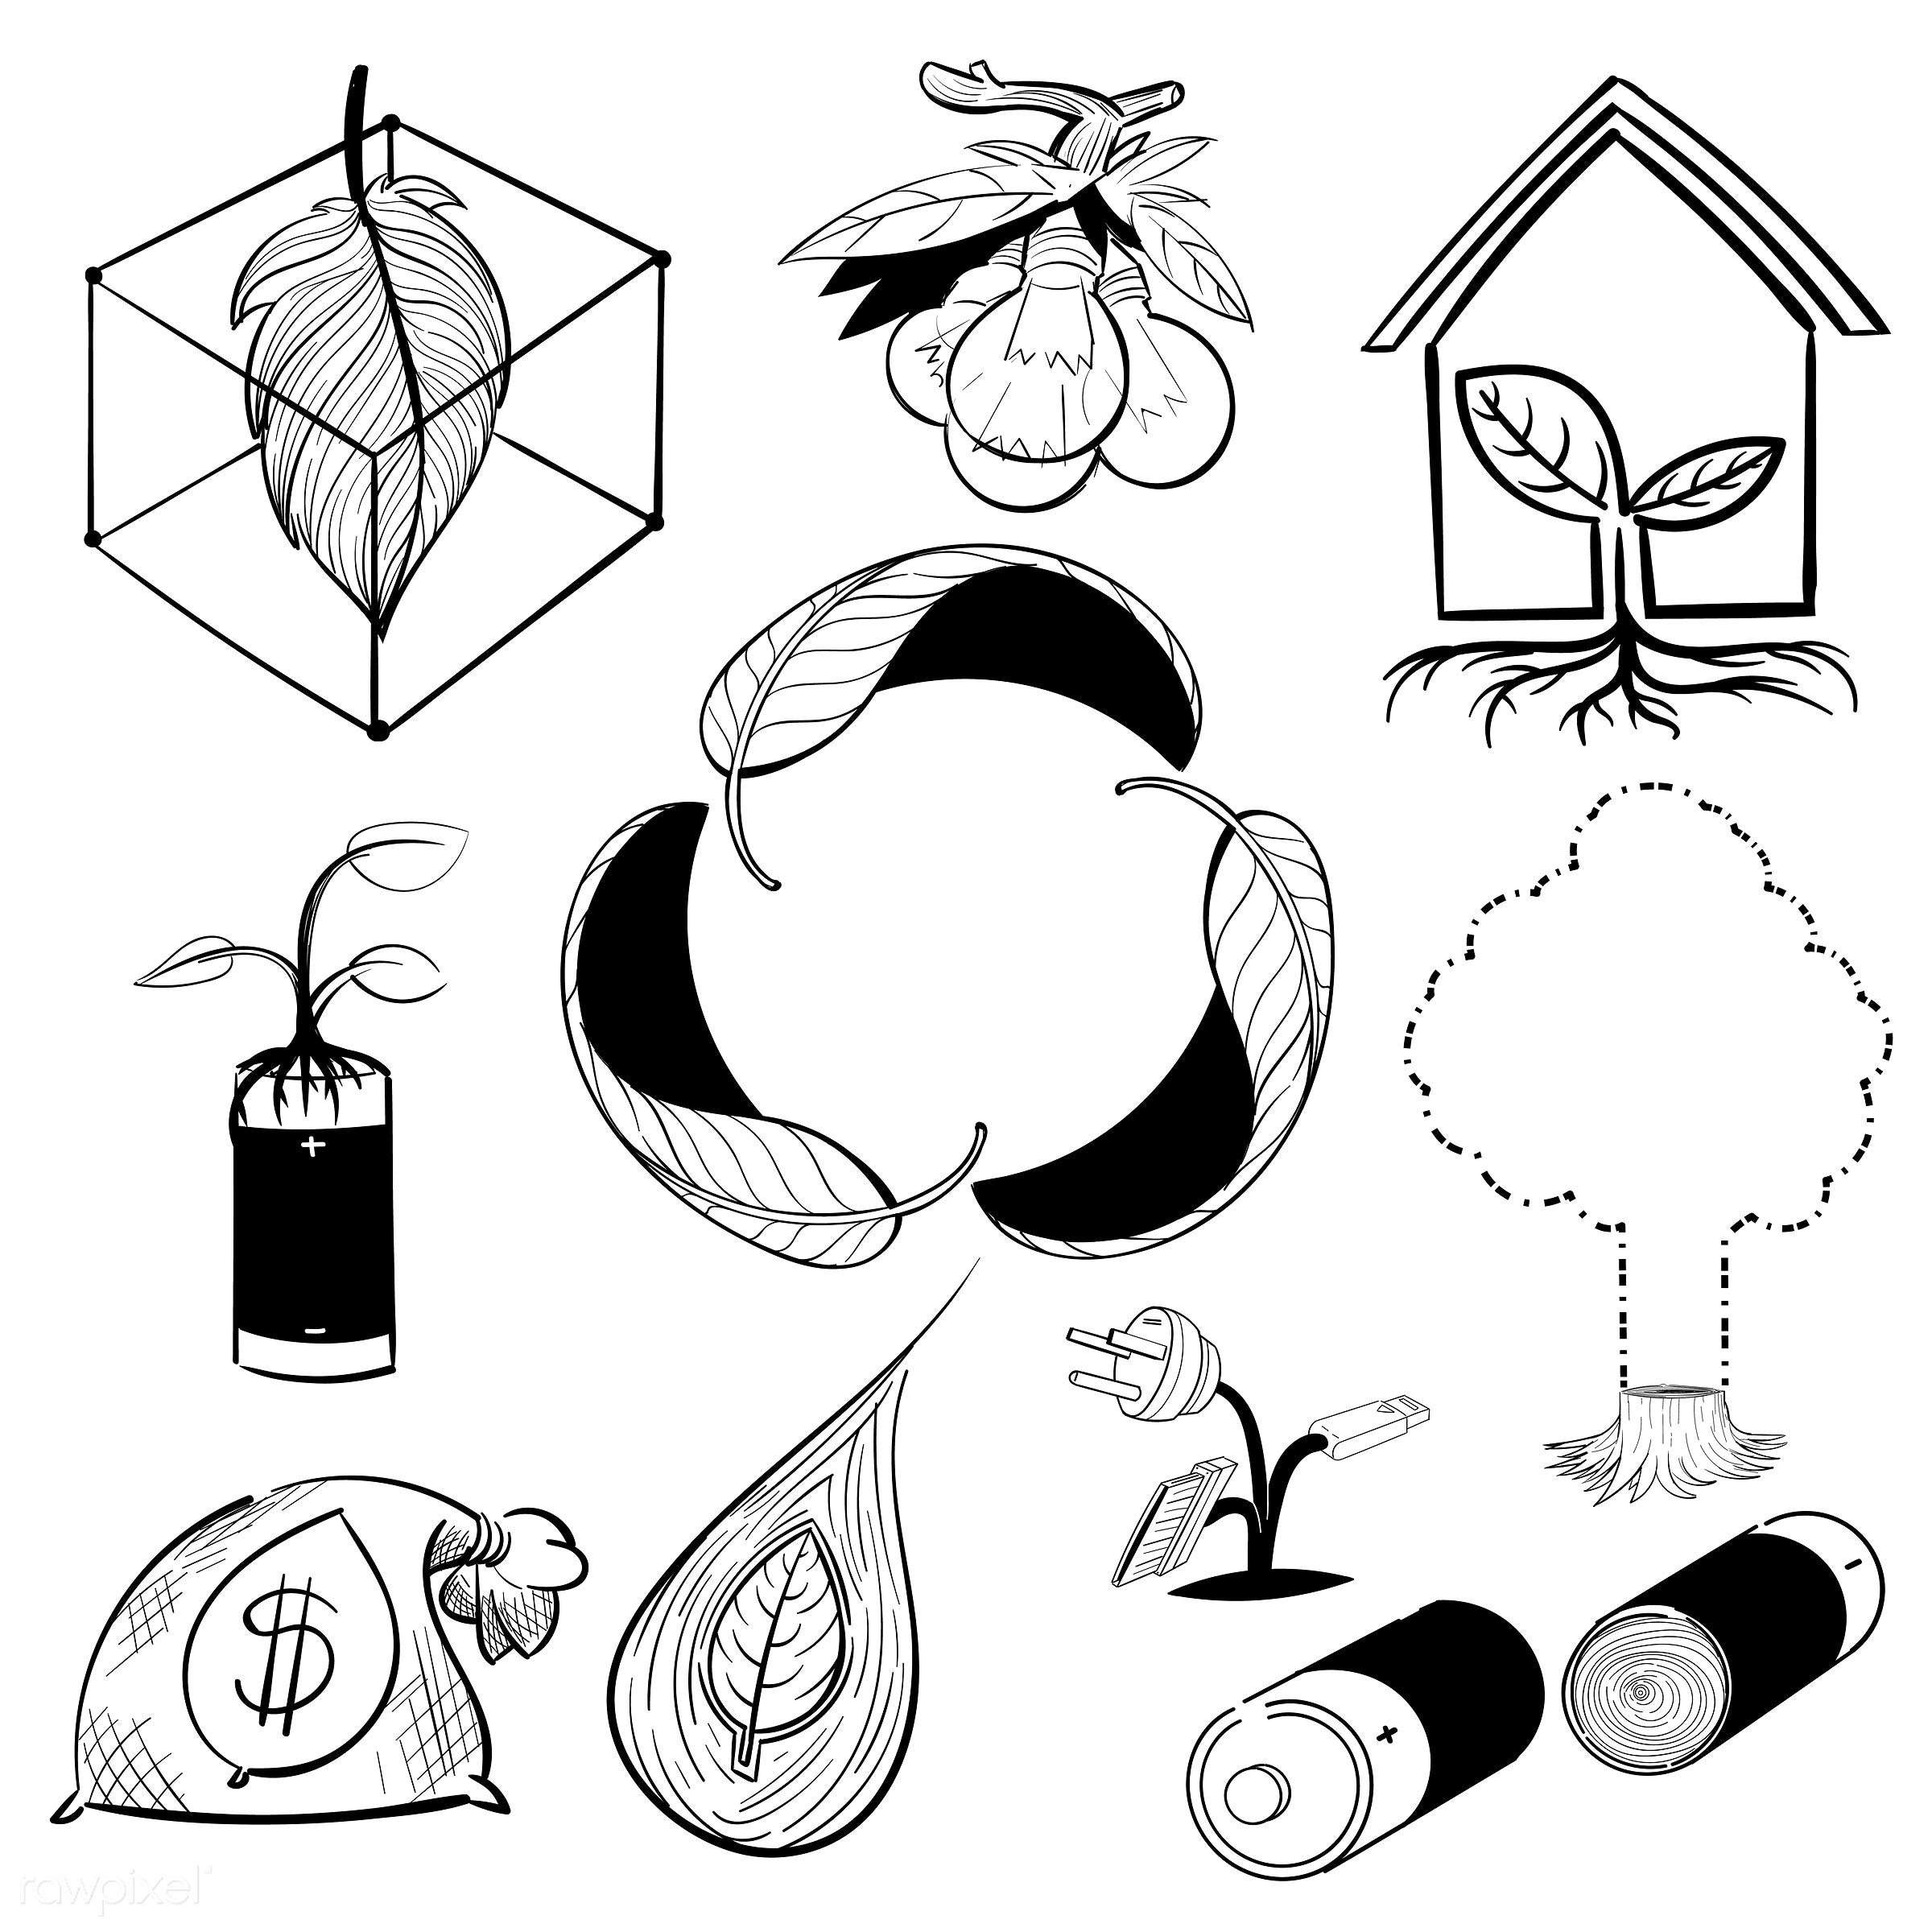 Hand drawing illustration set of environment sustainable - art, artwork, clean, collection, creative, creativity, design,...